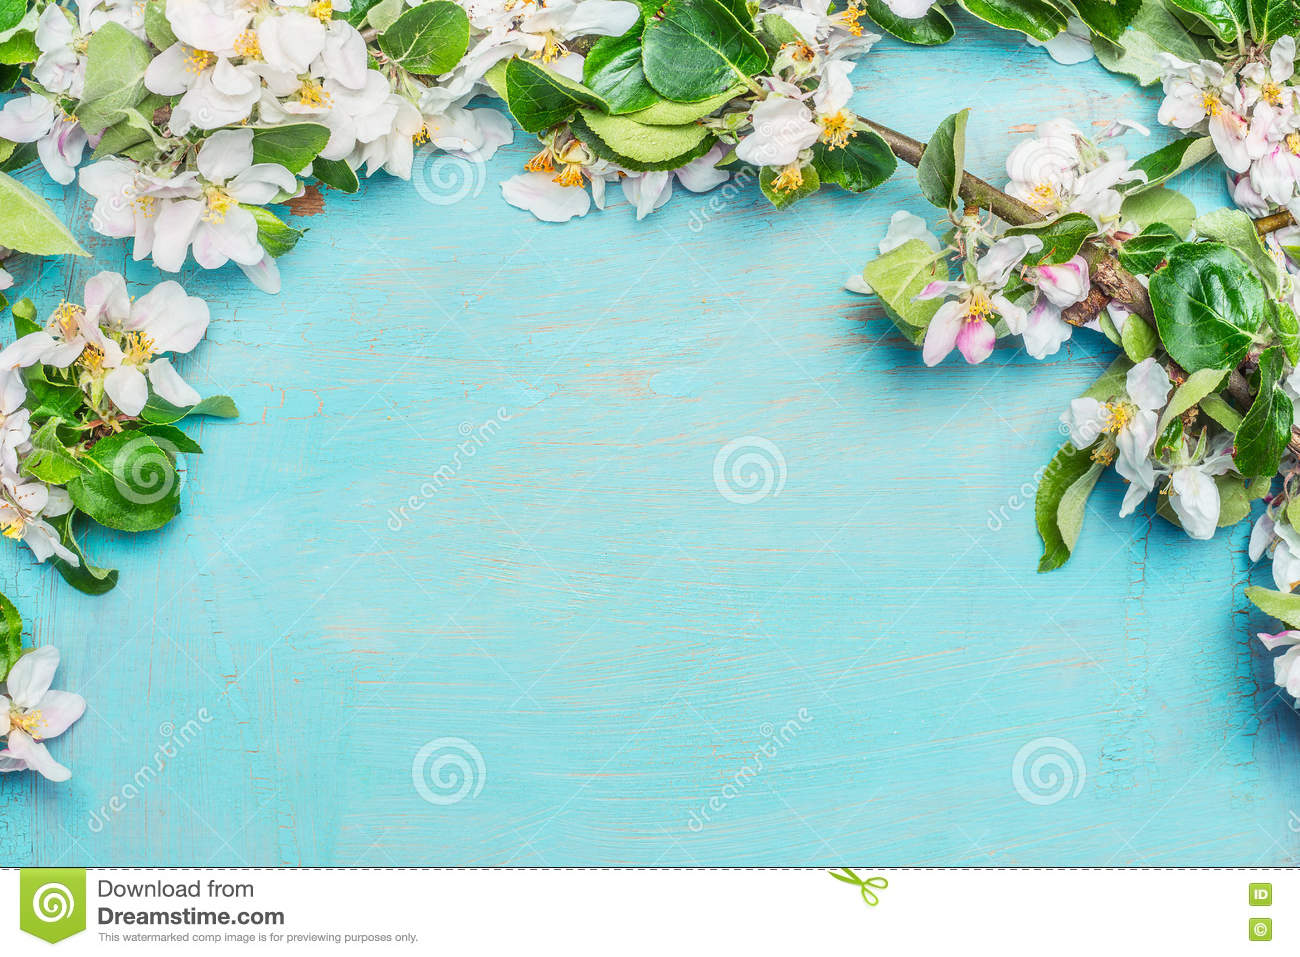 White Spring blossom on blue turquoise wooden background, top view, border. Springtime